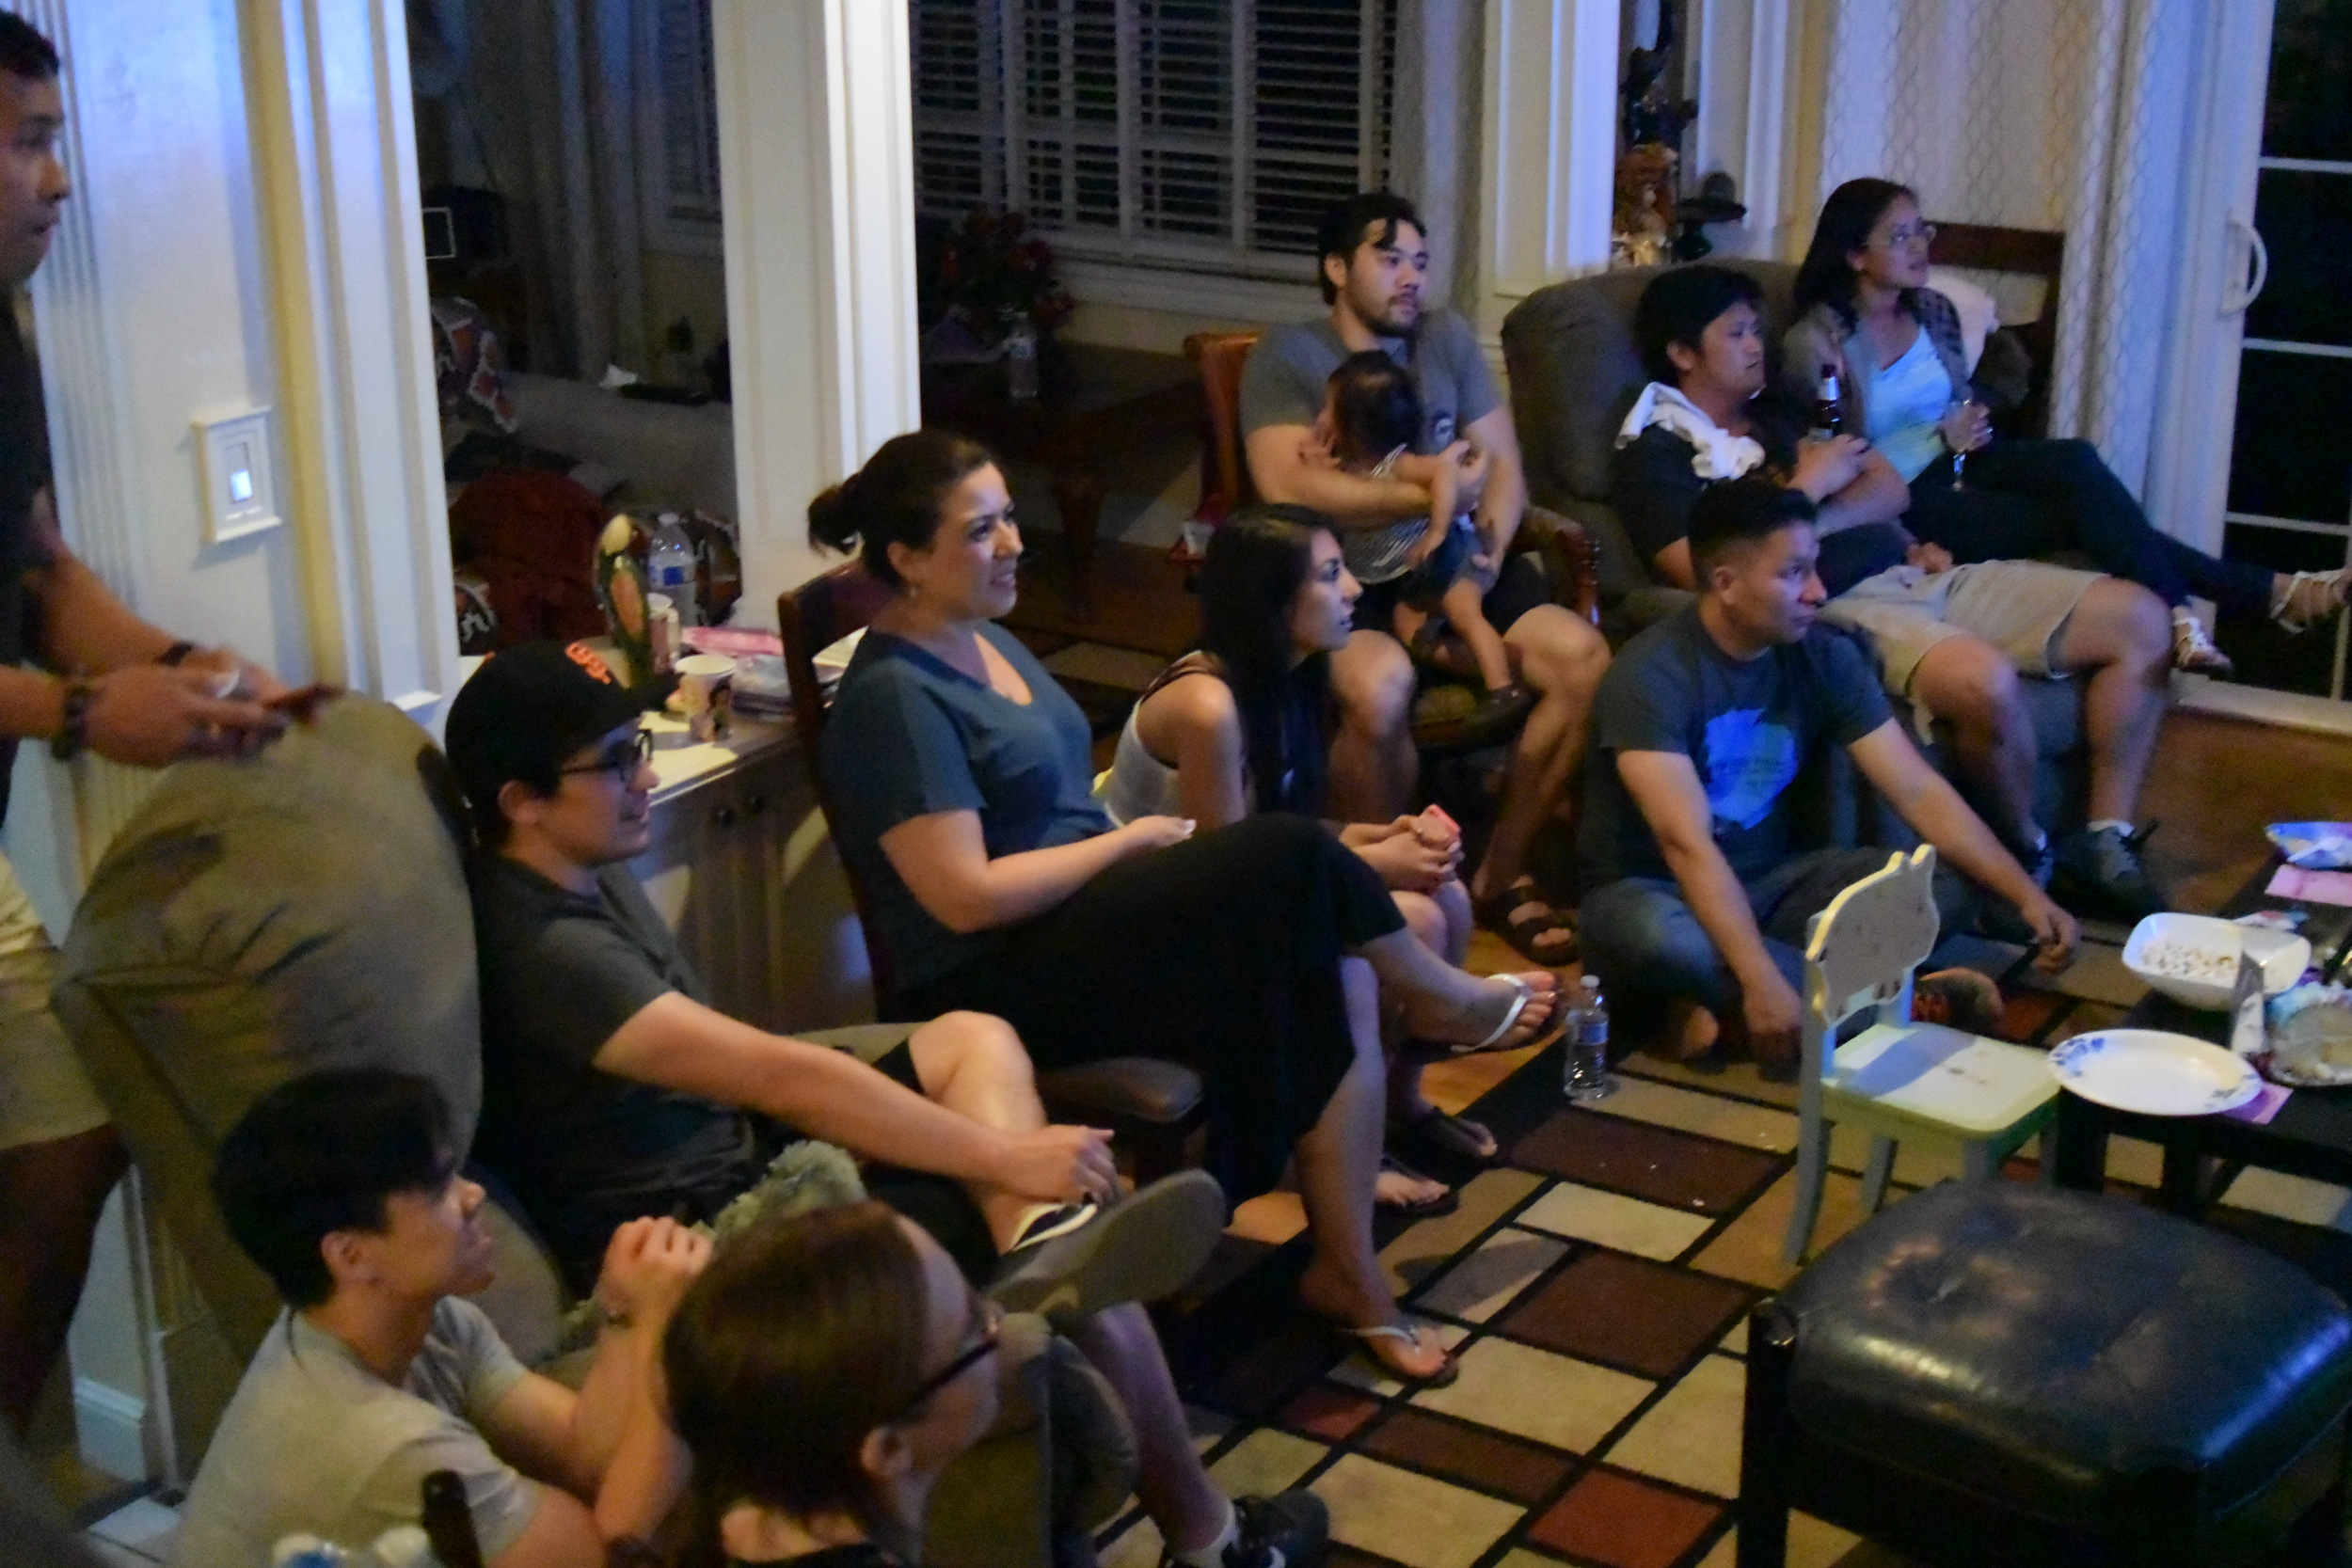 """Watching the Pacquiao-Mayweather """"Fighting of the Century"""". Great friends made it fun and worthwhile!"""